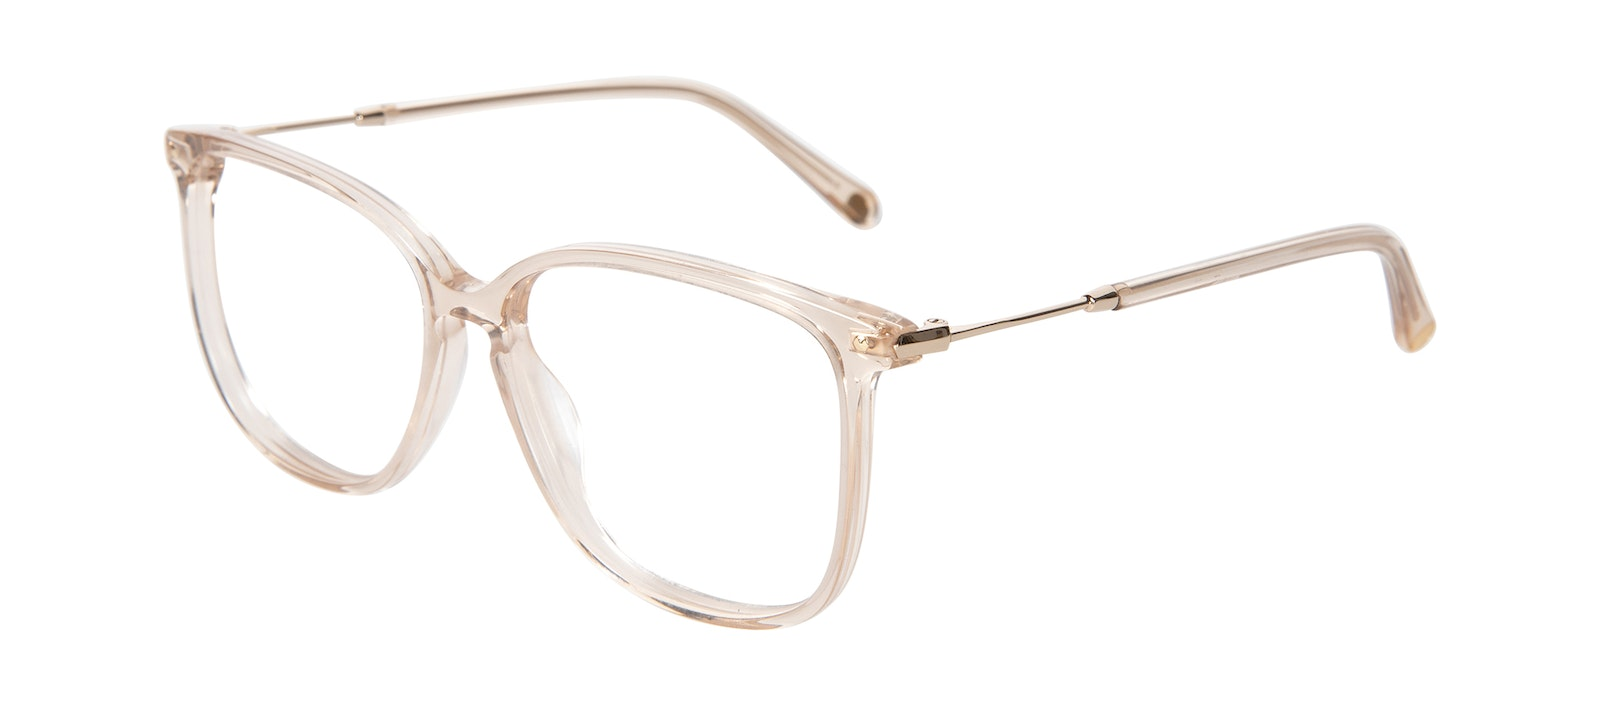 Affordable Fashion Glasses Square Eyeglasses Women Sonia Blush Tilt